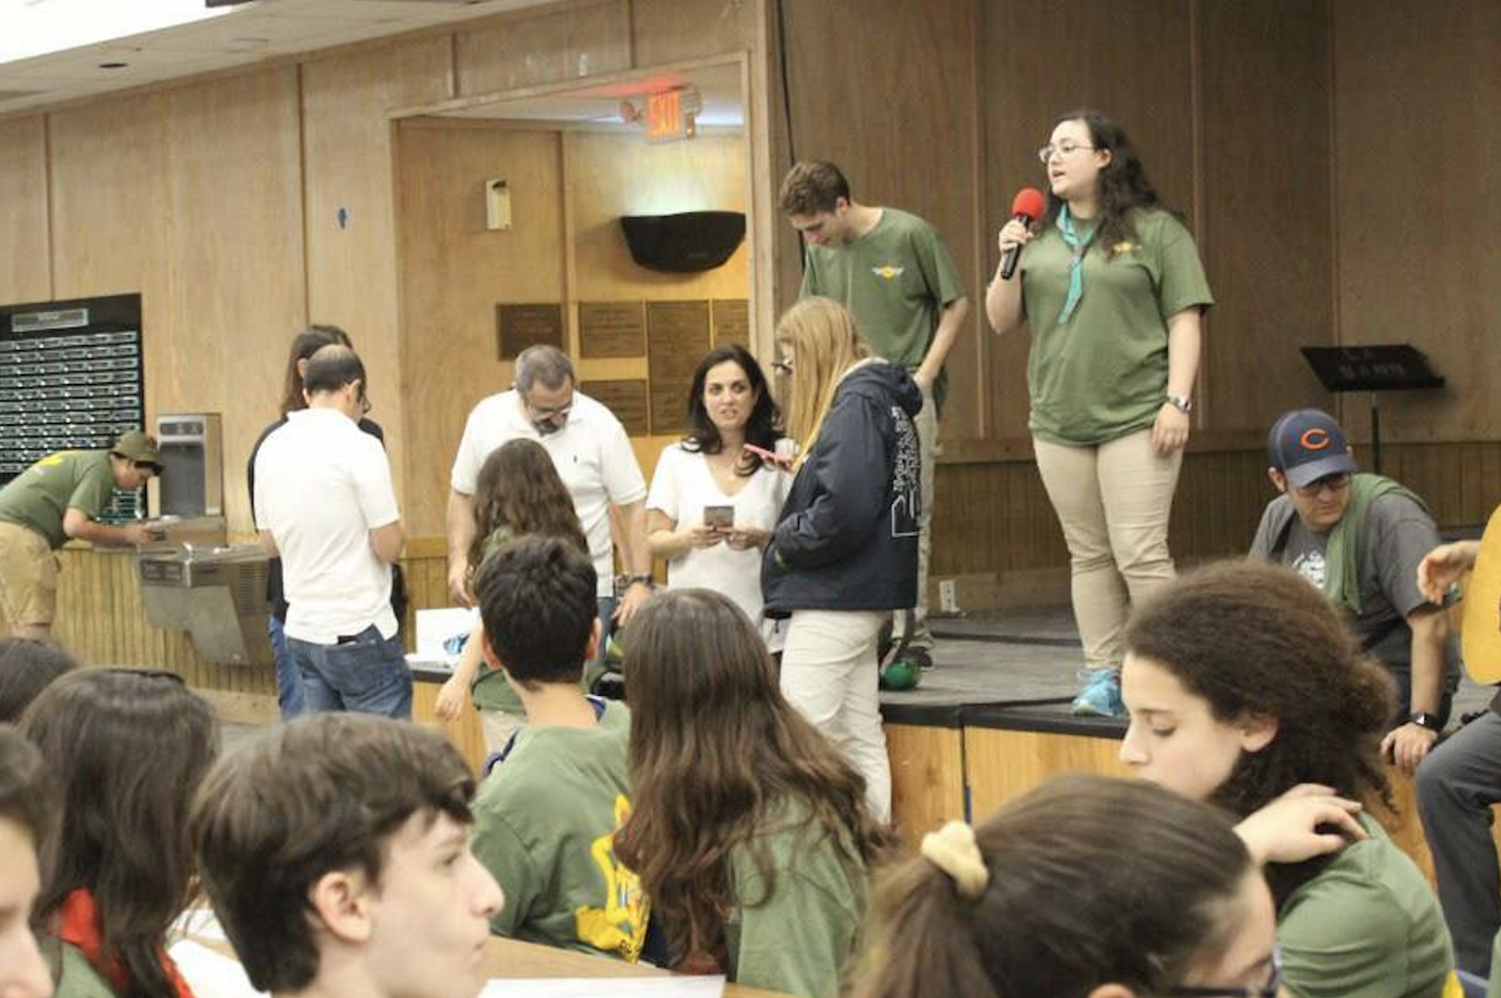 Many Jewish students on campus such as senior Yael Ben David pictured holding the microphone at are involved in Israeli Scouts, a group that builds connections among Jewish youth in America. With Yom Kippur approaching, many people practicing the faith are fasting, for spiritual reflection.